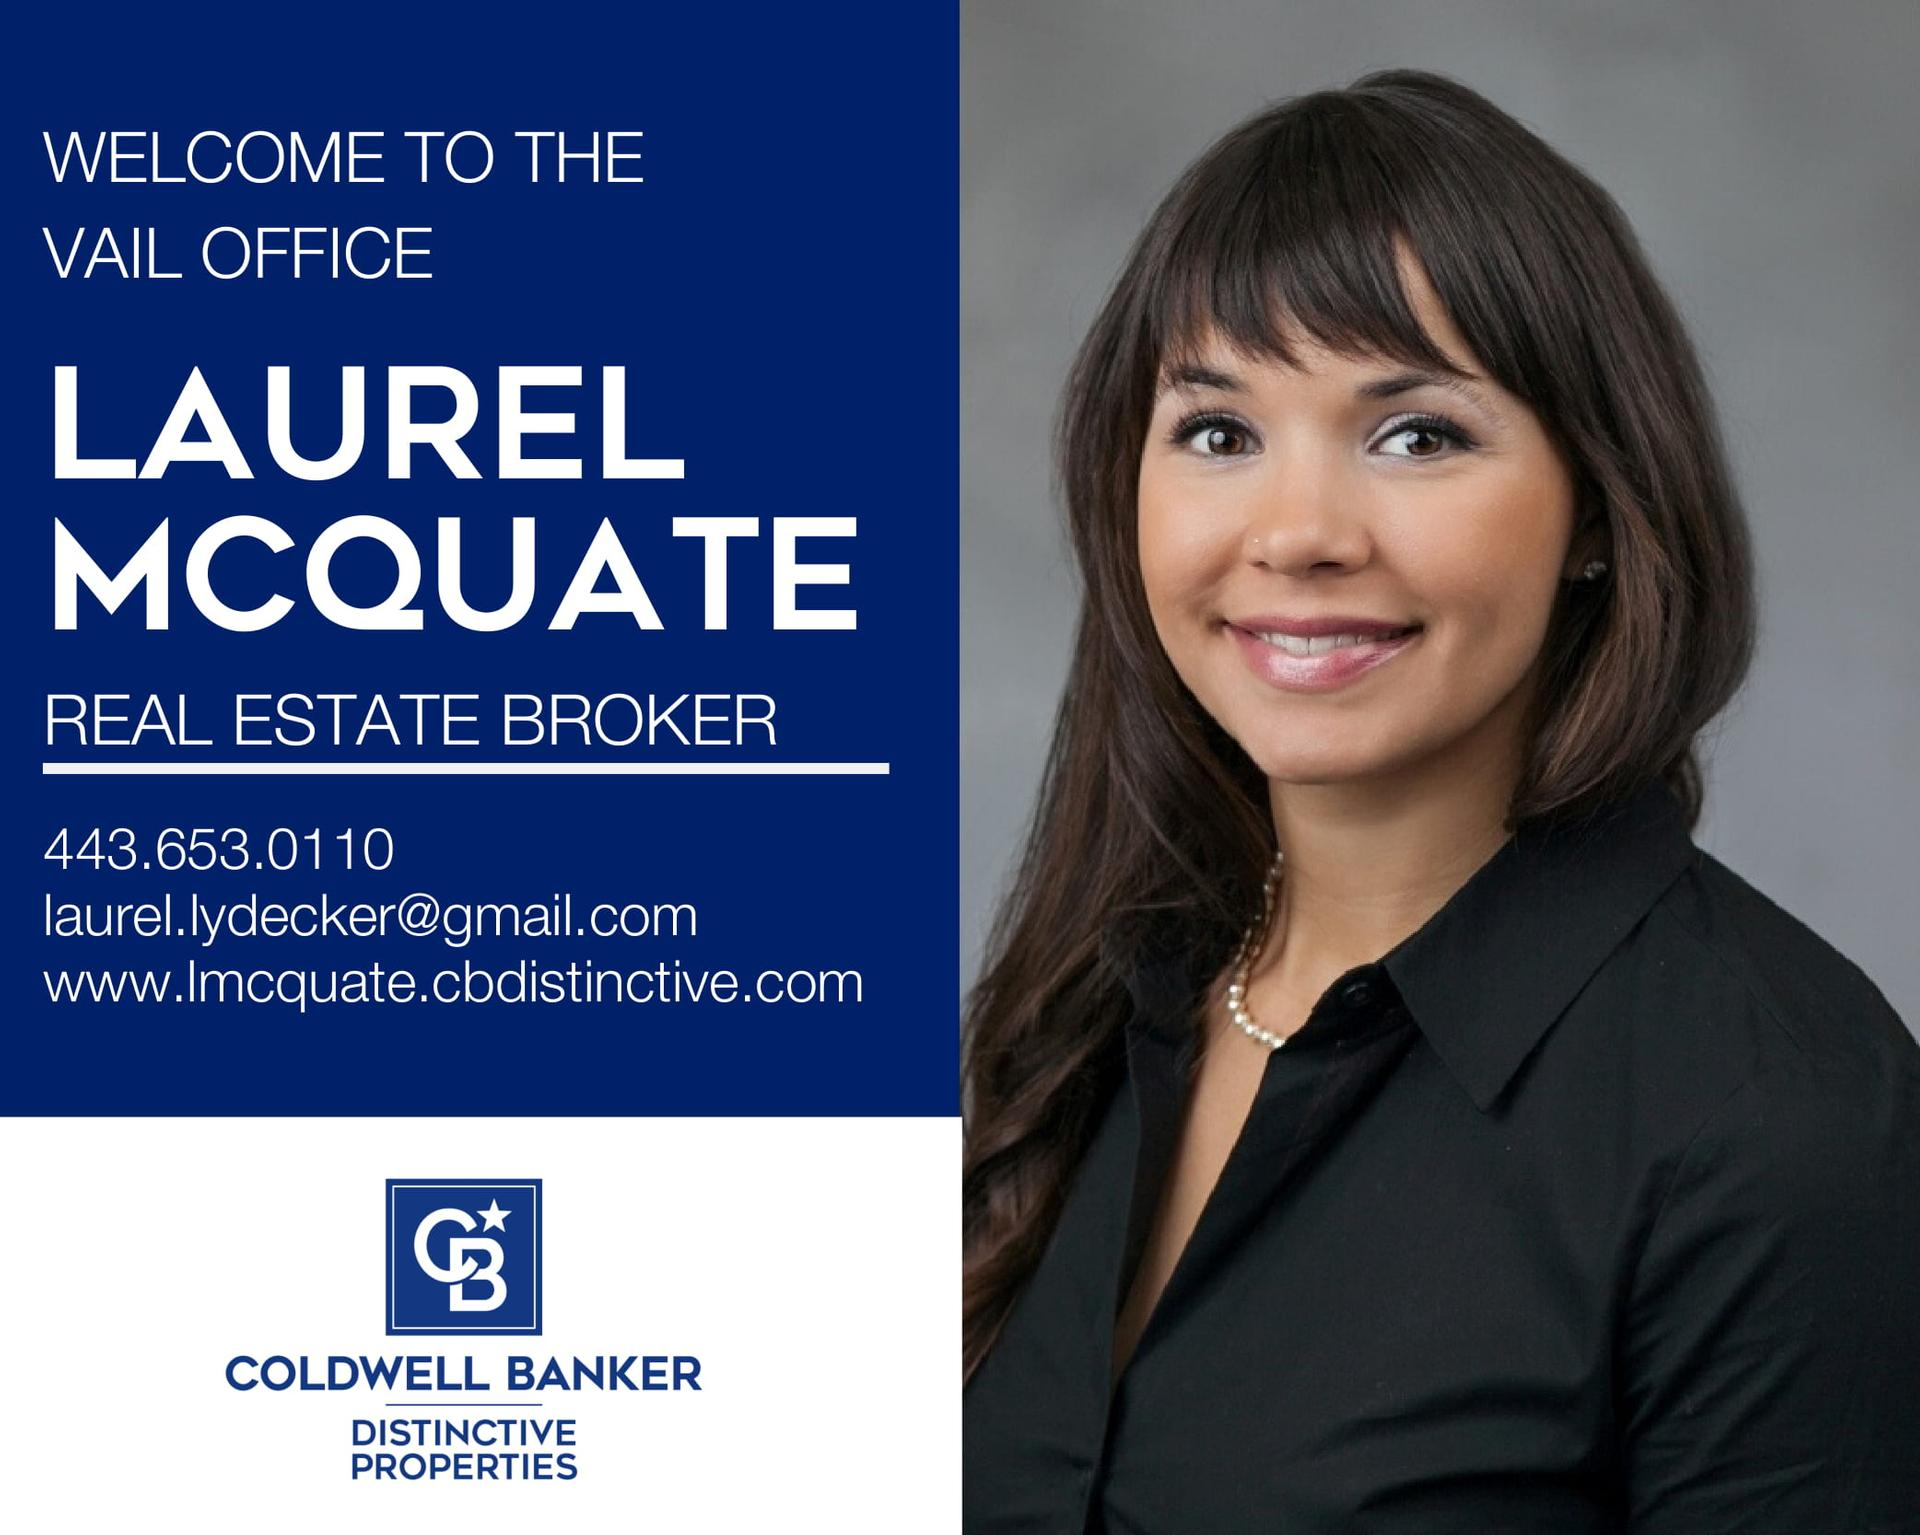 Please help us welcome Laurel McQuate to our Coldwell Banker family! Main Photo